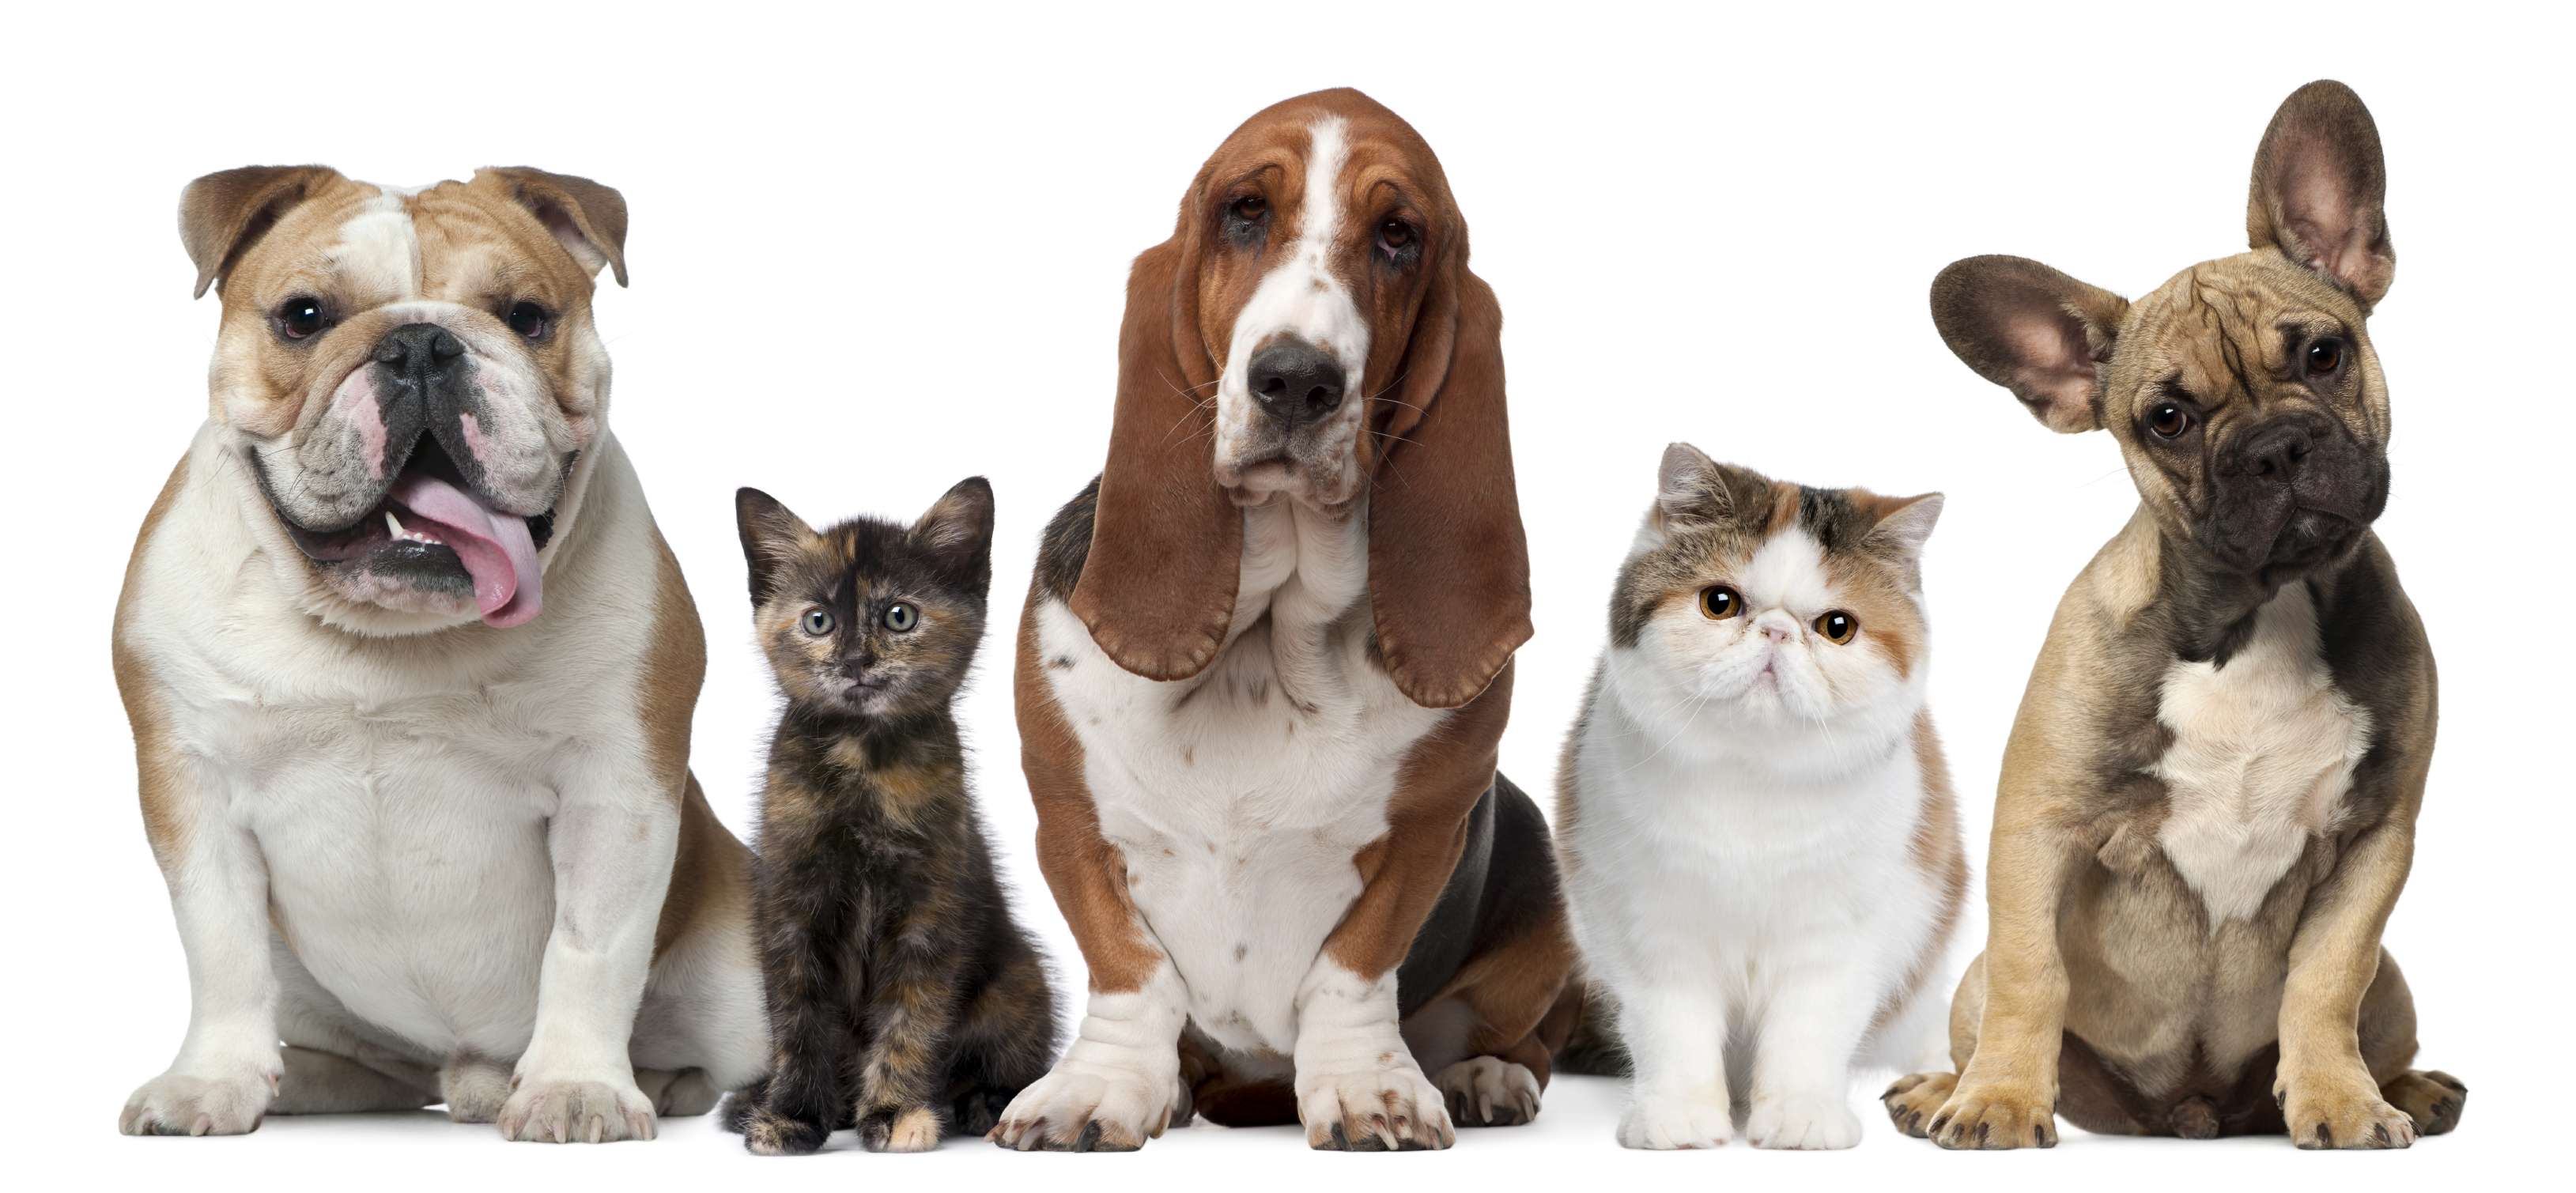 Your children have been begging for a pet. What is your first pick for the family animal?